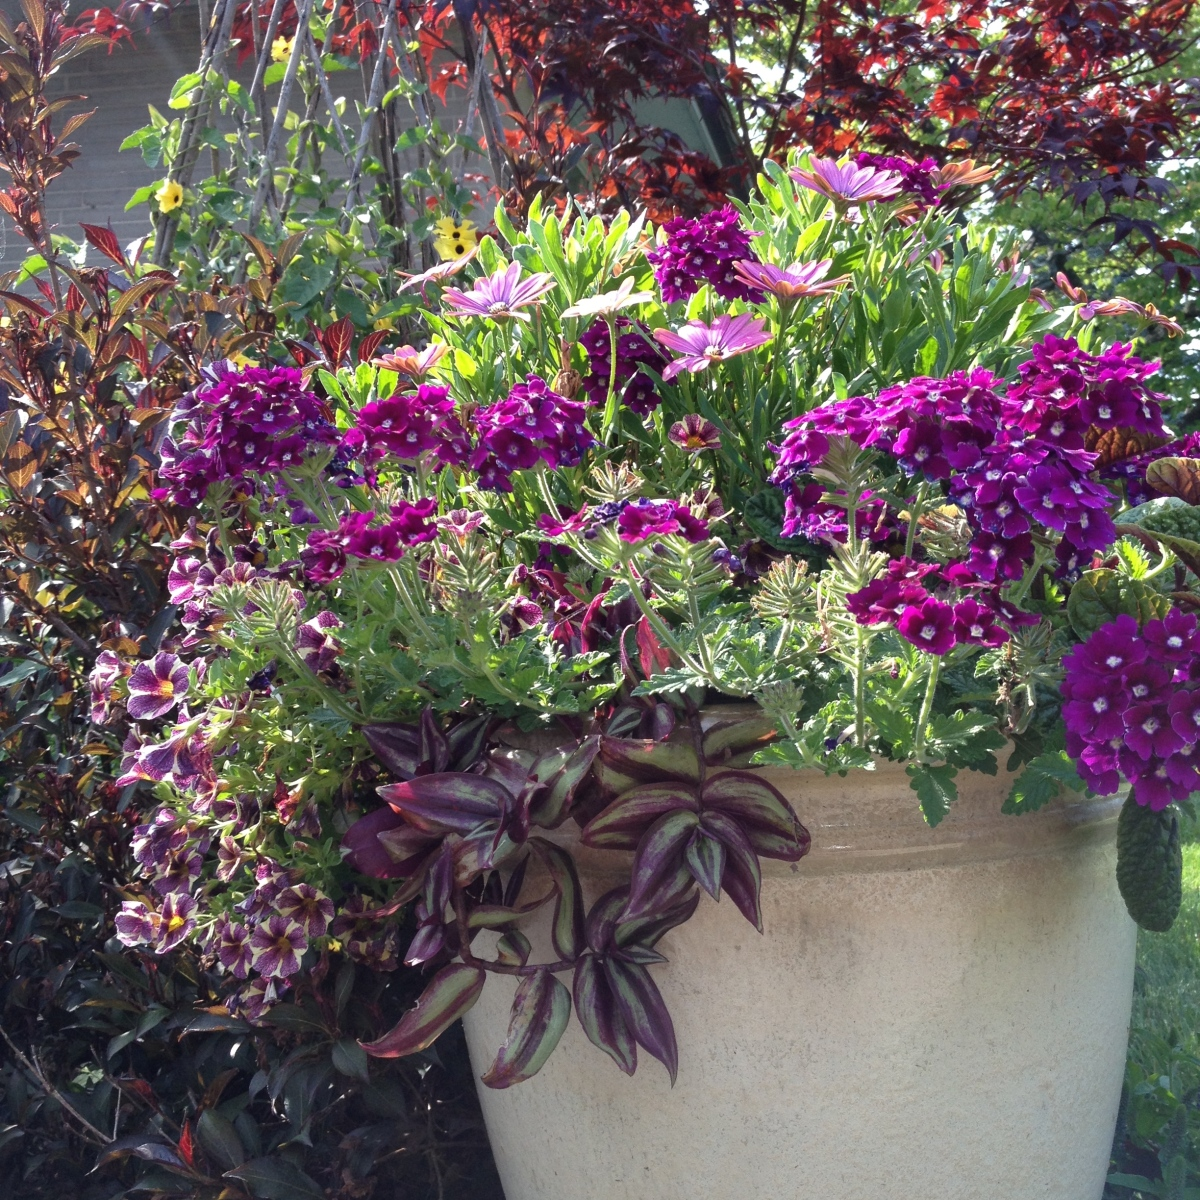 A container of purple flowers and foliage at the height of summer.